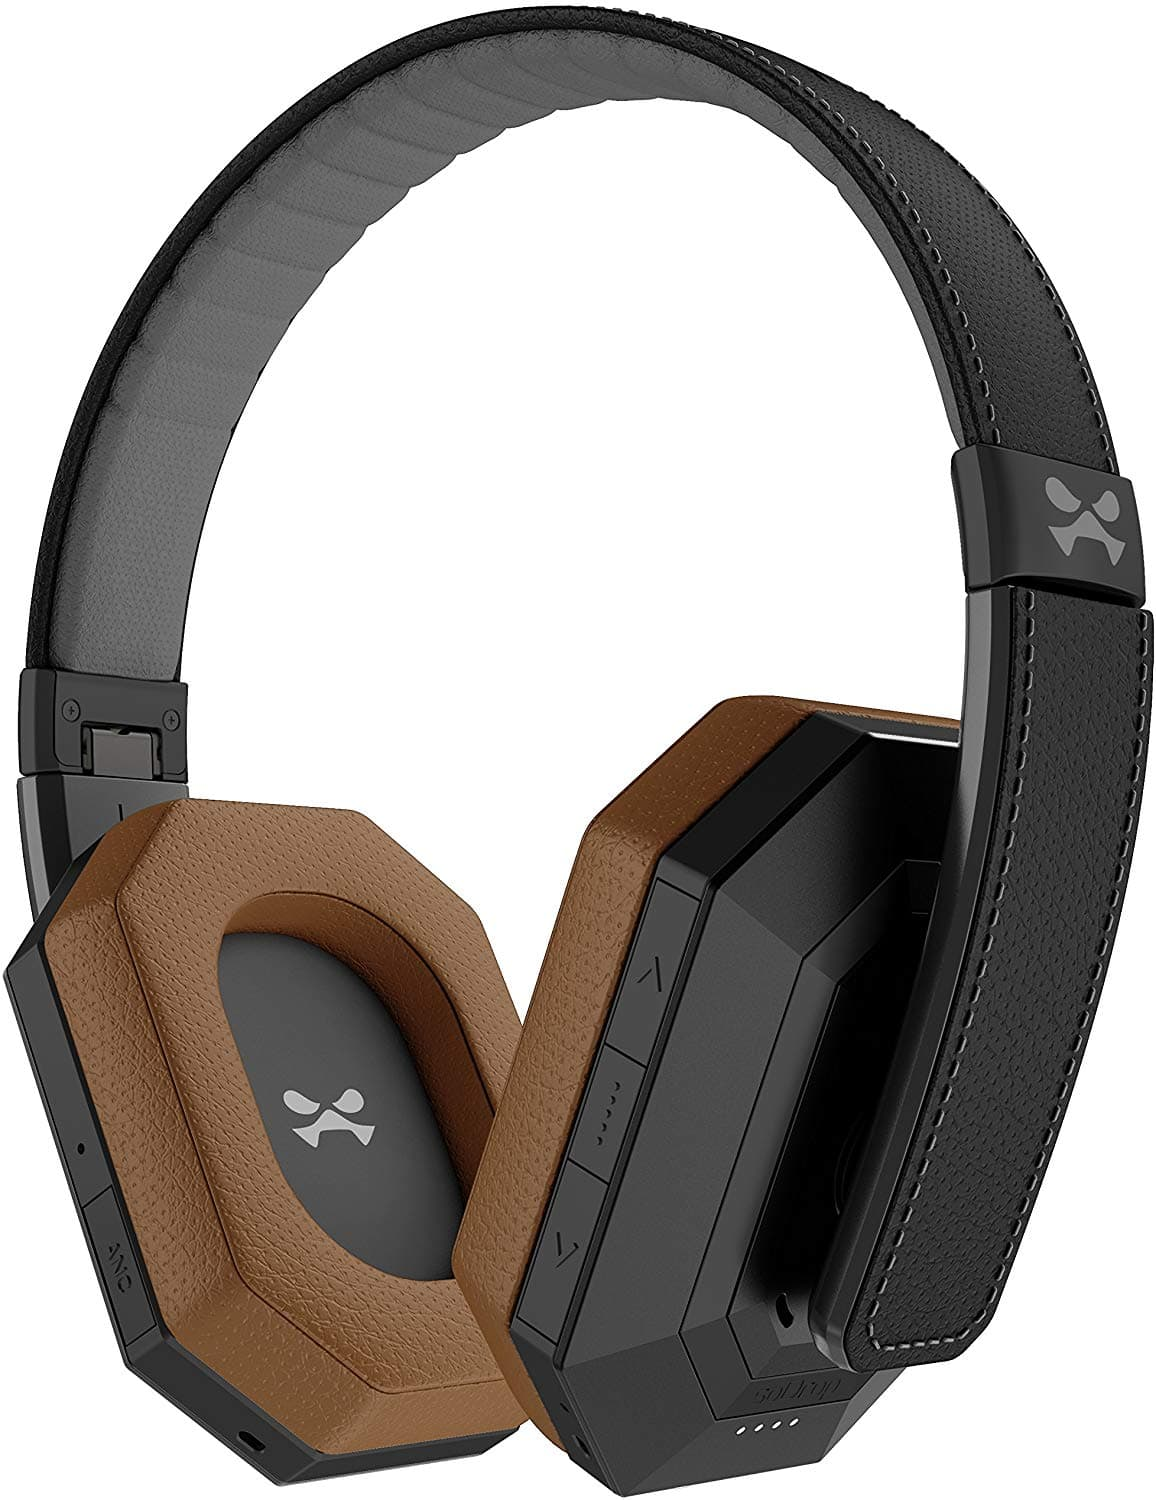 Ghostek soDrop Pro Wireless Bluetooth Headphones with Active Noise Cancelling for $101.48 + Free Shipping